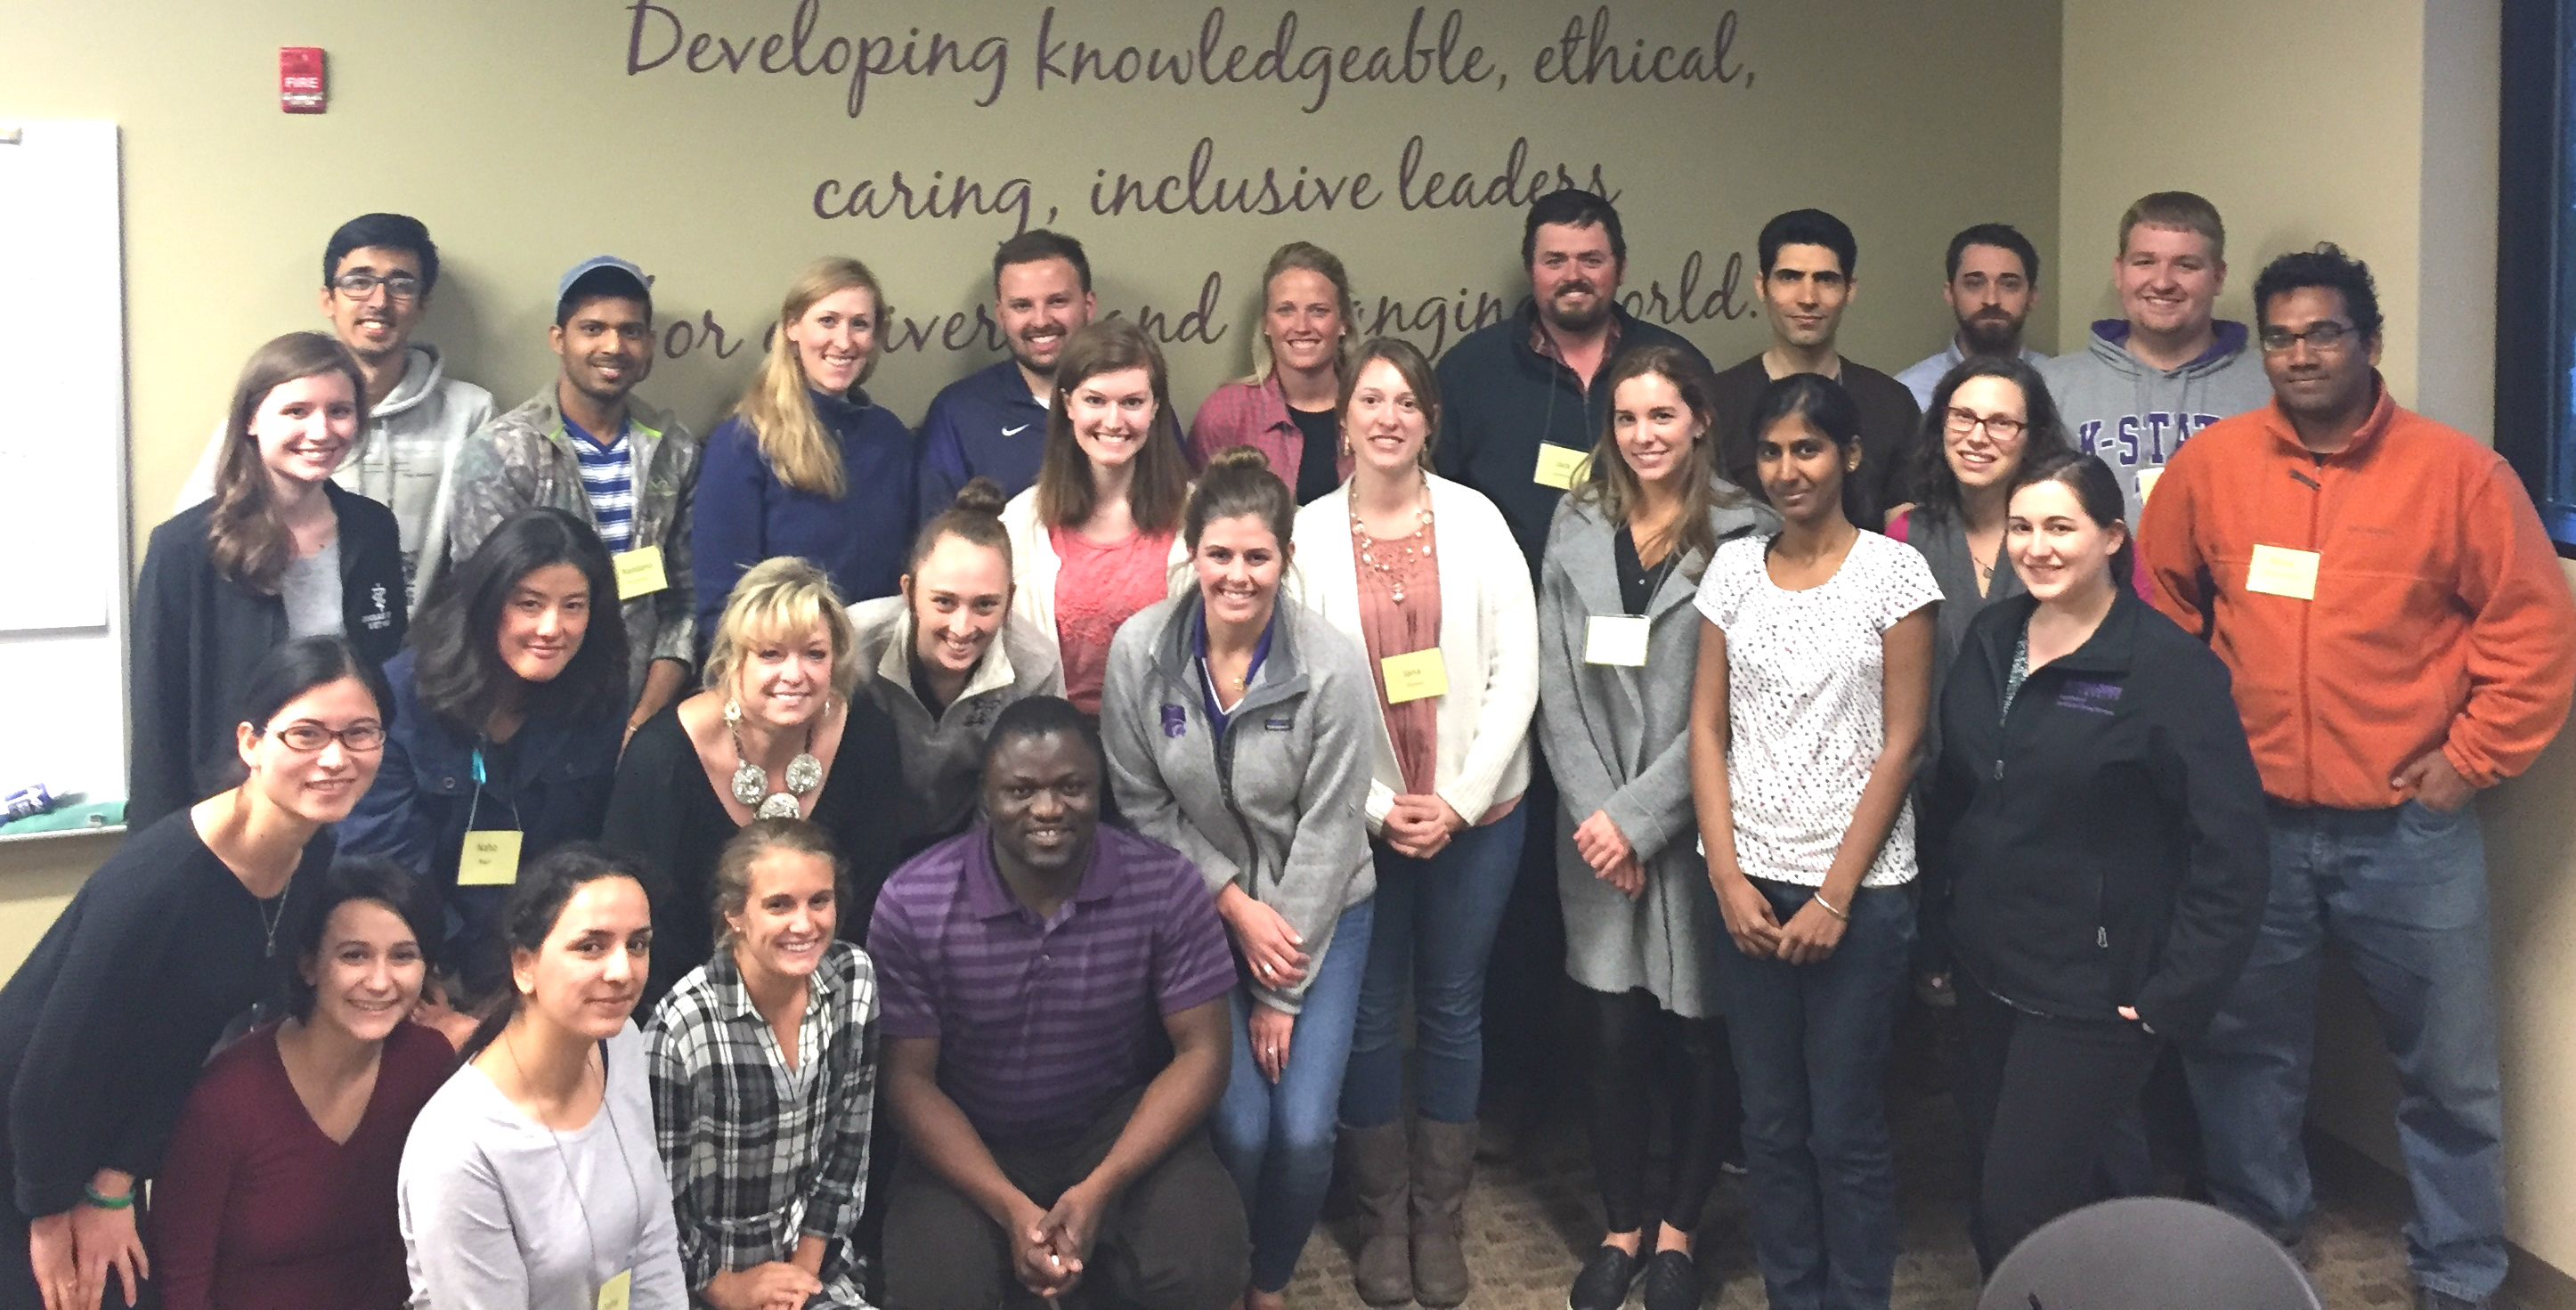 2017 grad student leadership development program participants